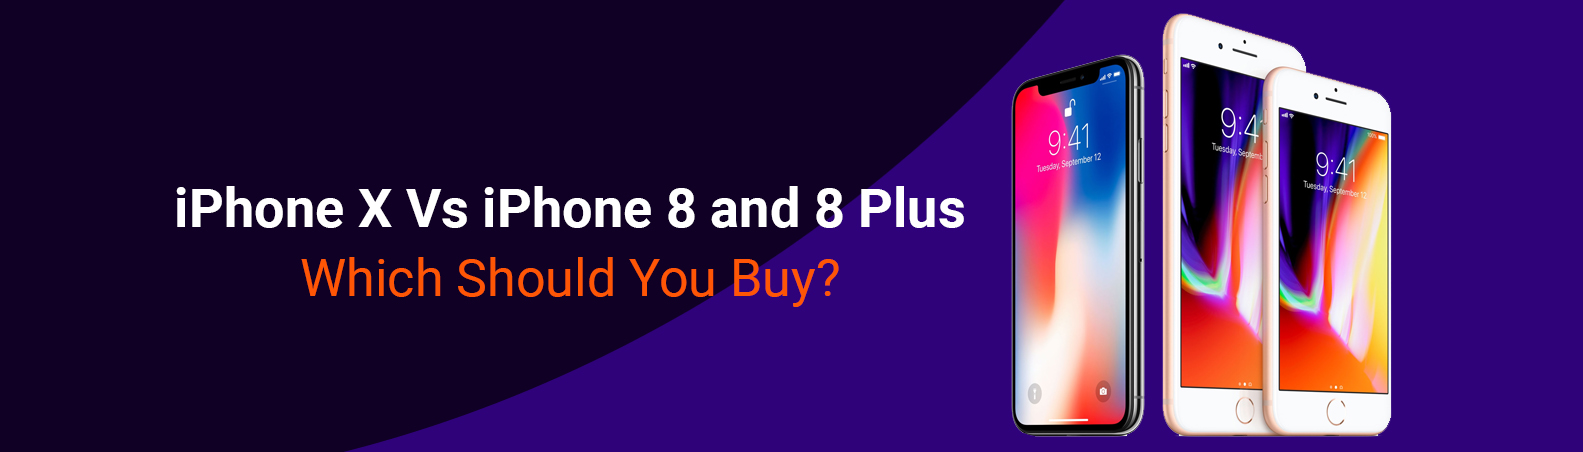 iPhone X  Vs iPhone 8 and 8 Plus | Which Should You Buy?